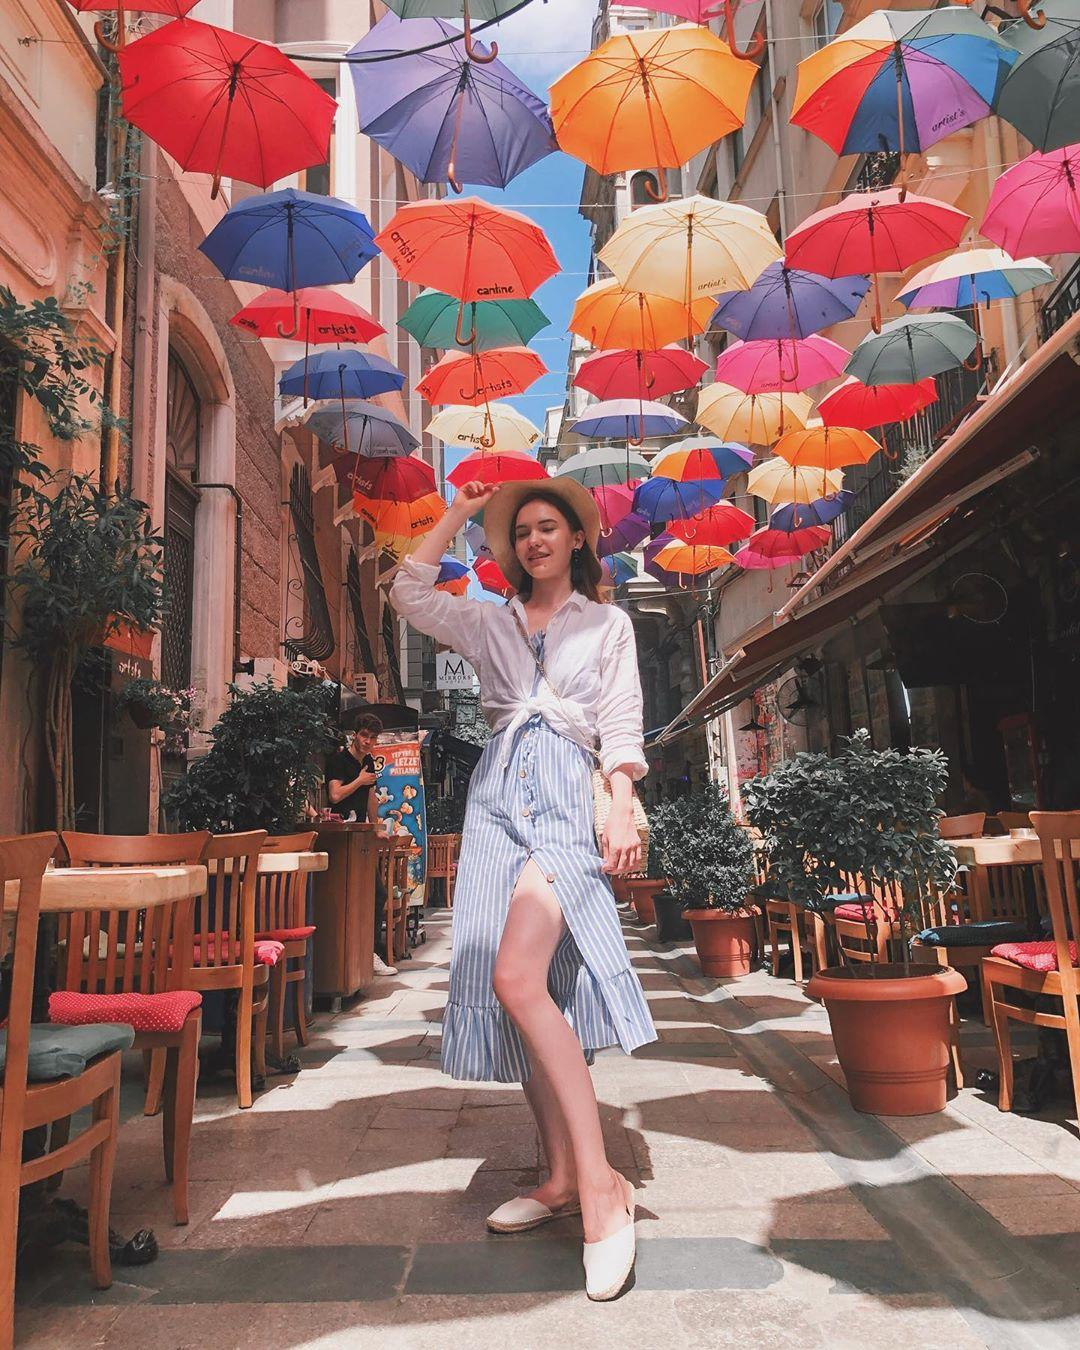 Picture with tags: Real, Fashion and beauty, Travel, Girl